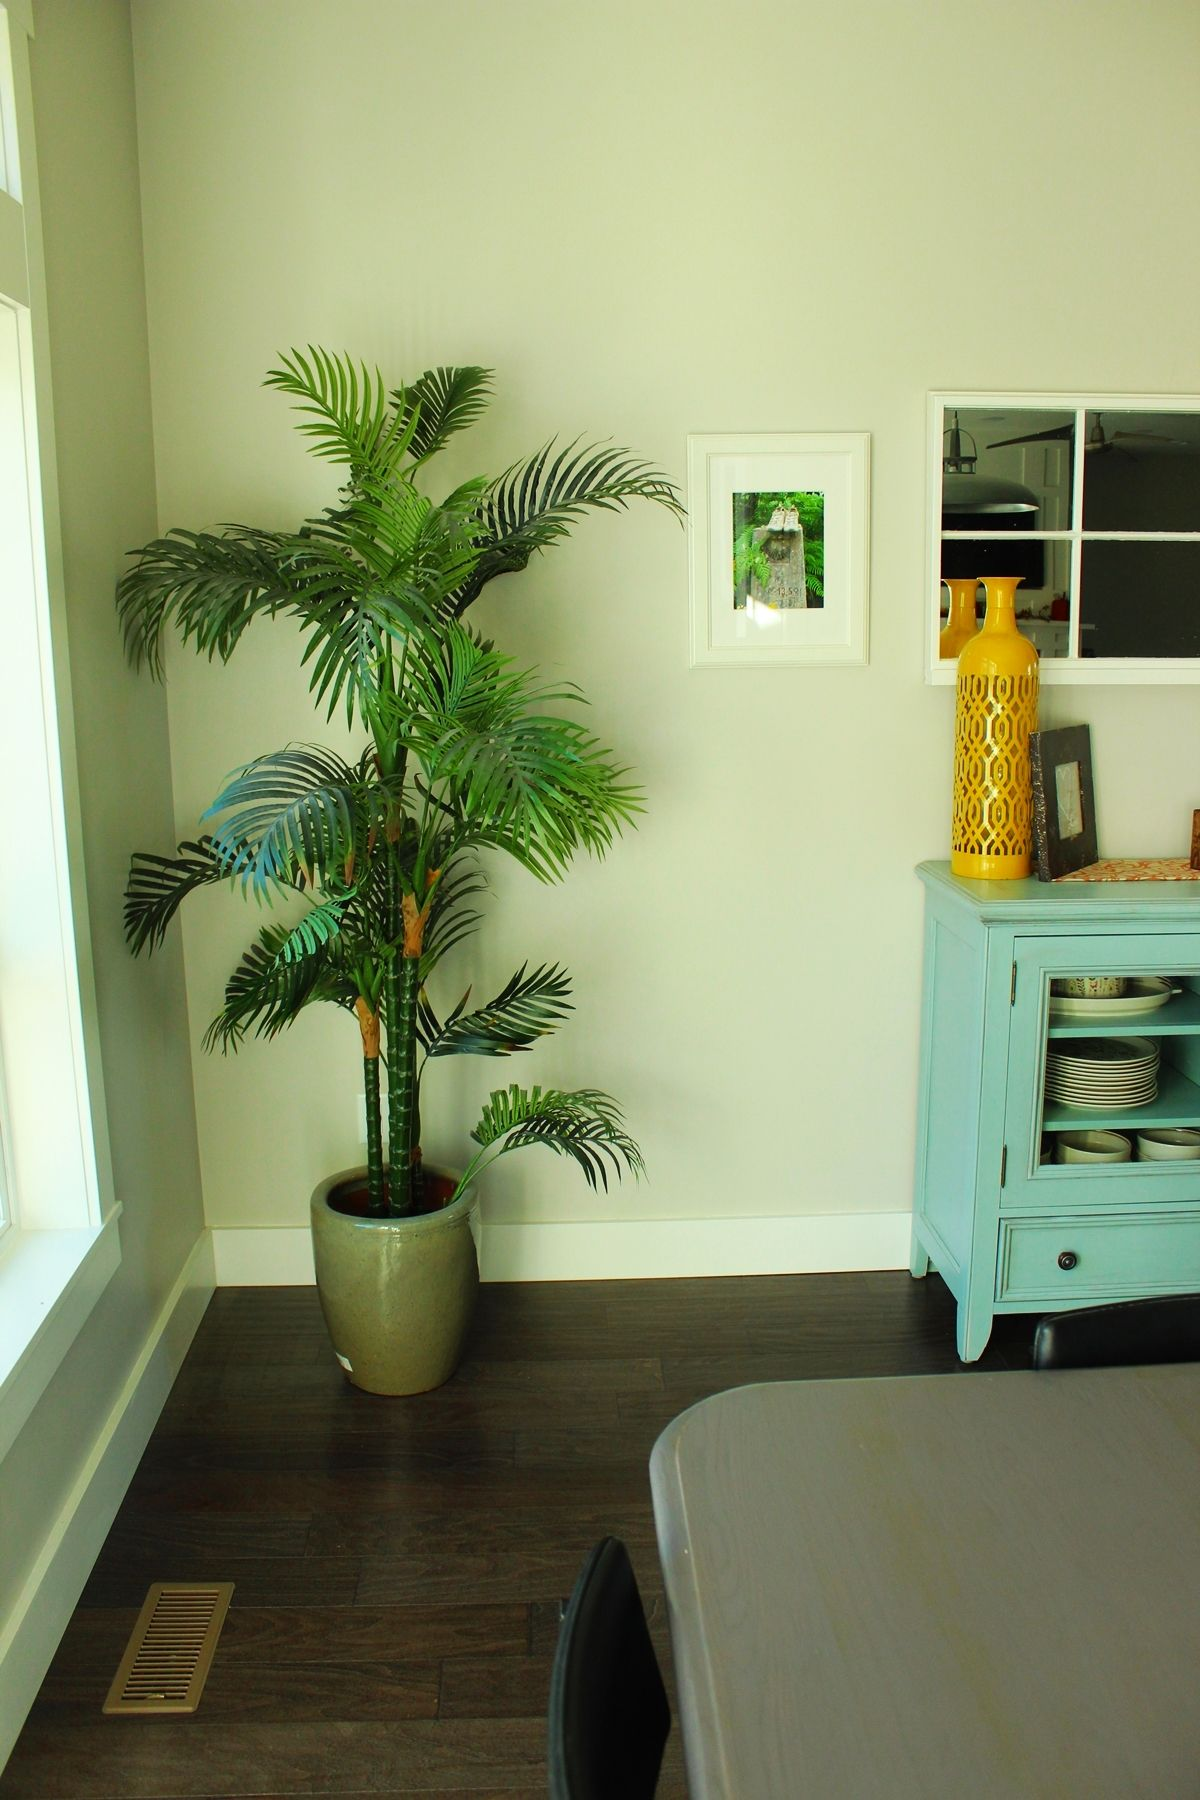 How to Decorate Dining Room - Corner Plants